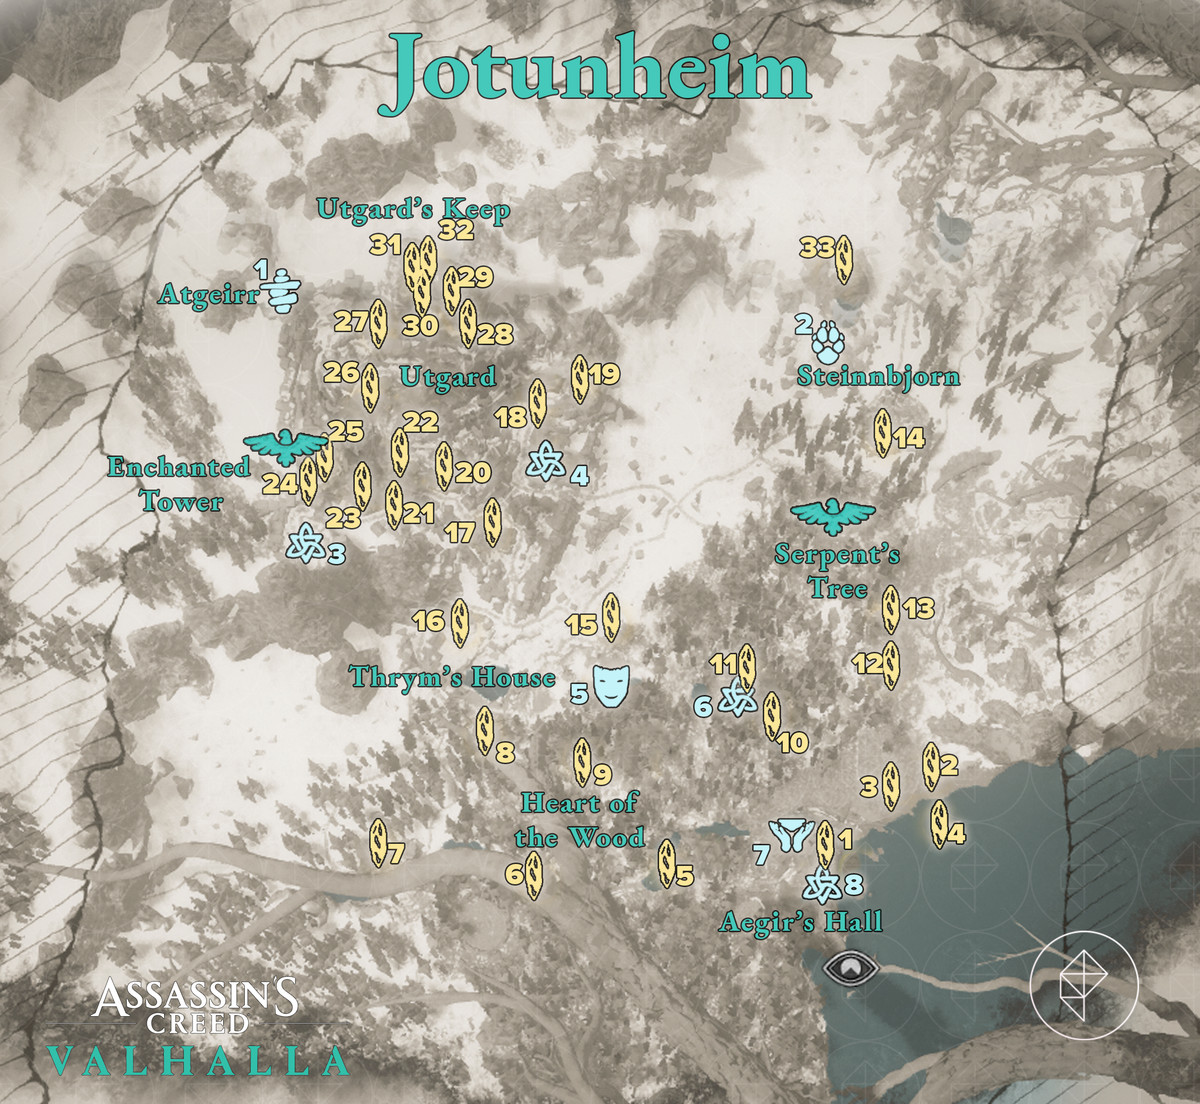 Jotunheim Wealth, Mysteries, and Artifacts locations map